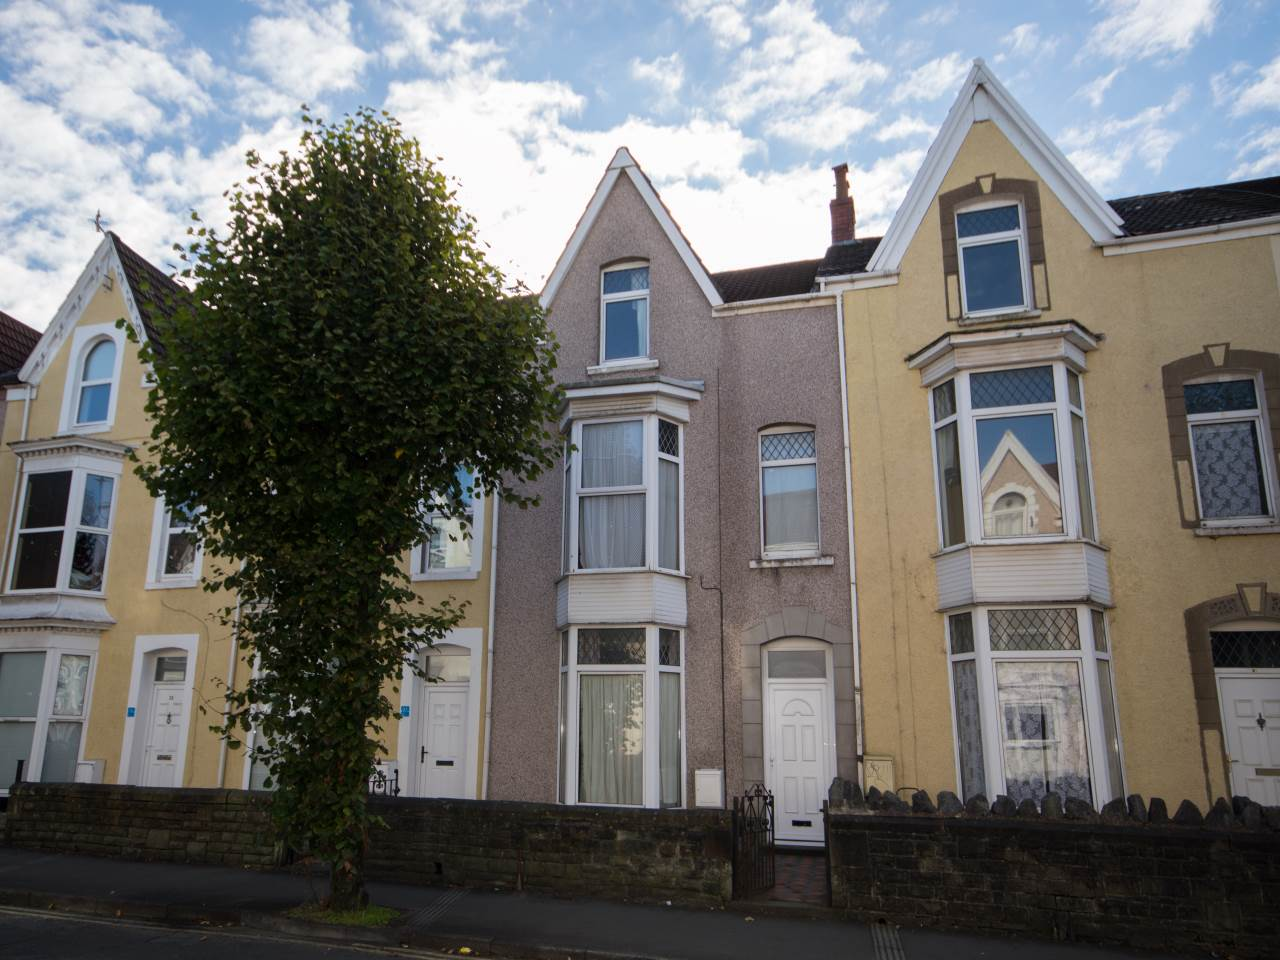 7 bed house to rent in GWYDR CRESCENT, UPLANDS - Property Image 1